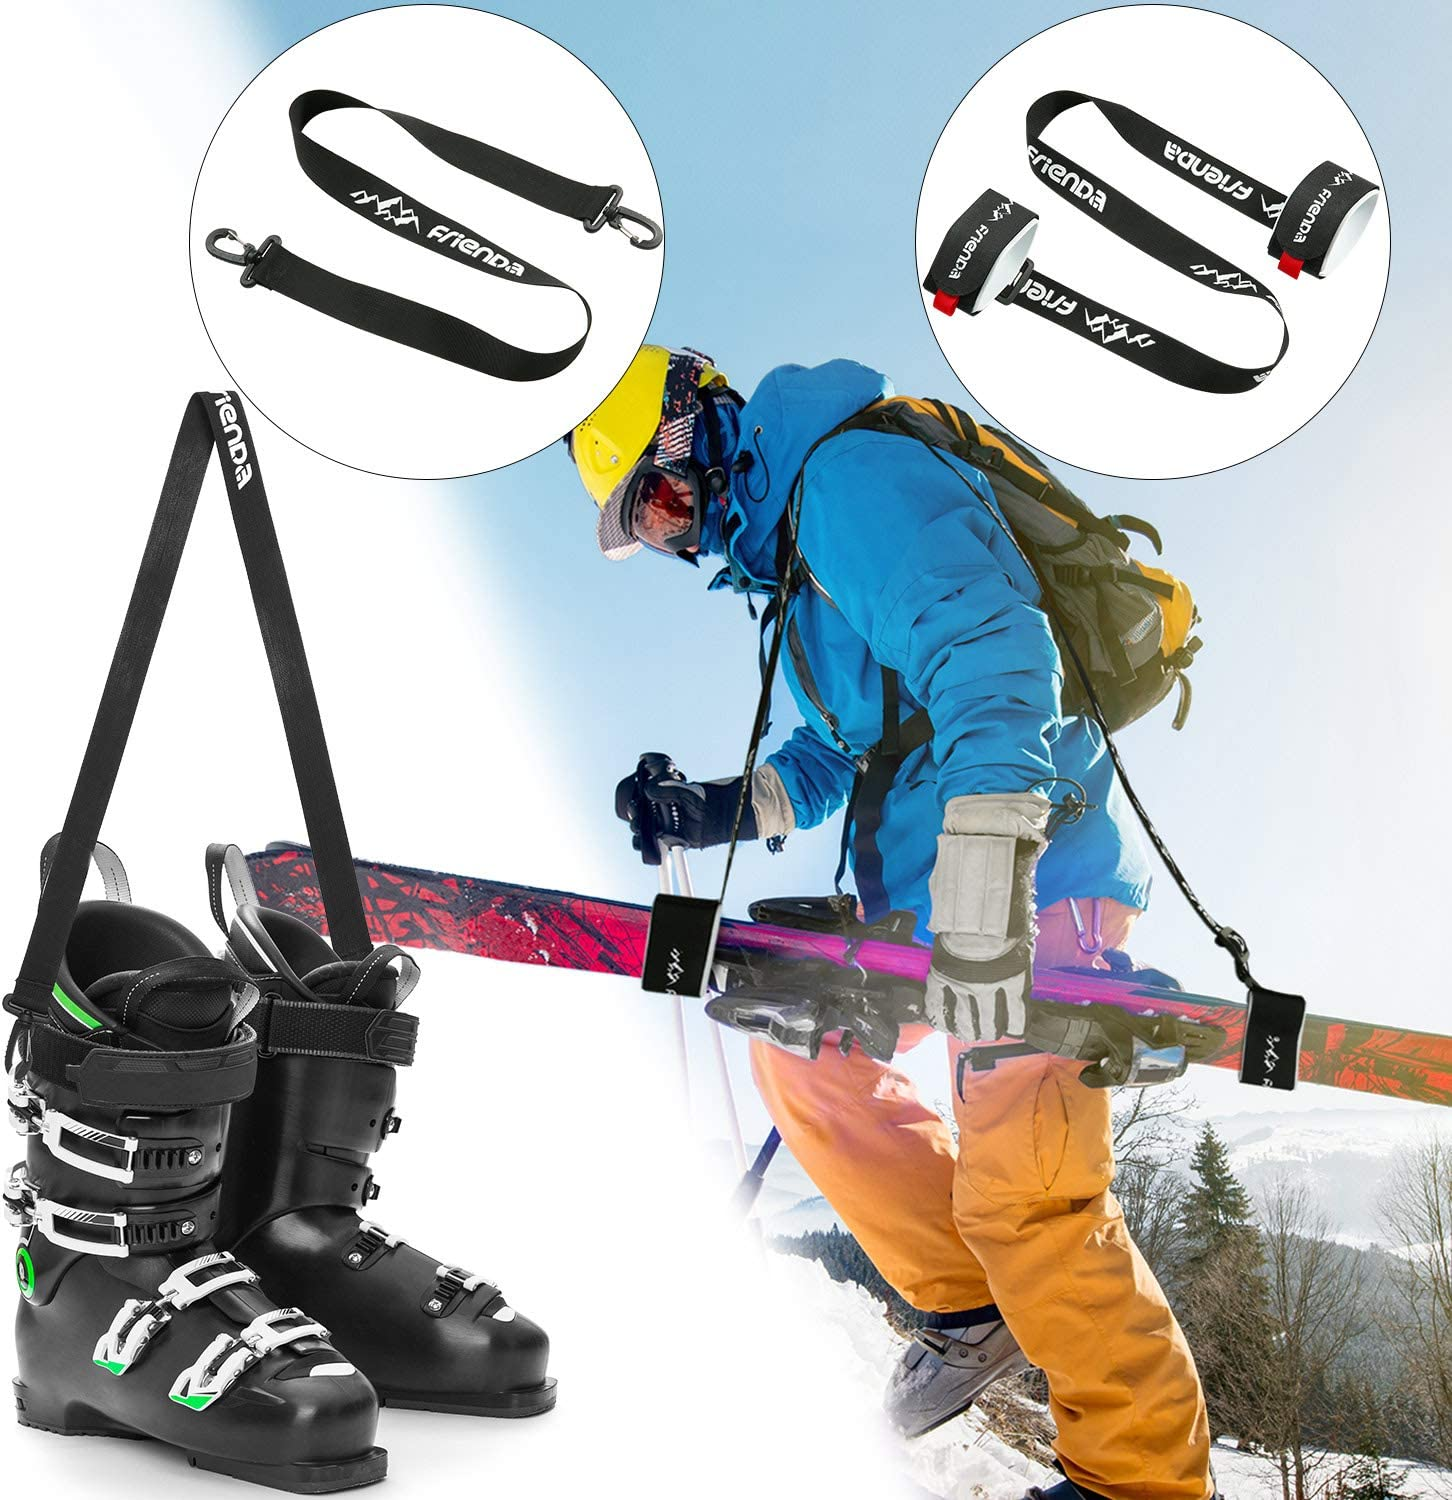 Sukoa Ski /& Pole Carrier Straps Downhill Skiing and Backcountry Gear Ski Accessories for Men and Women Shoulder Sling with Cushioned Holder Protects from Scratches